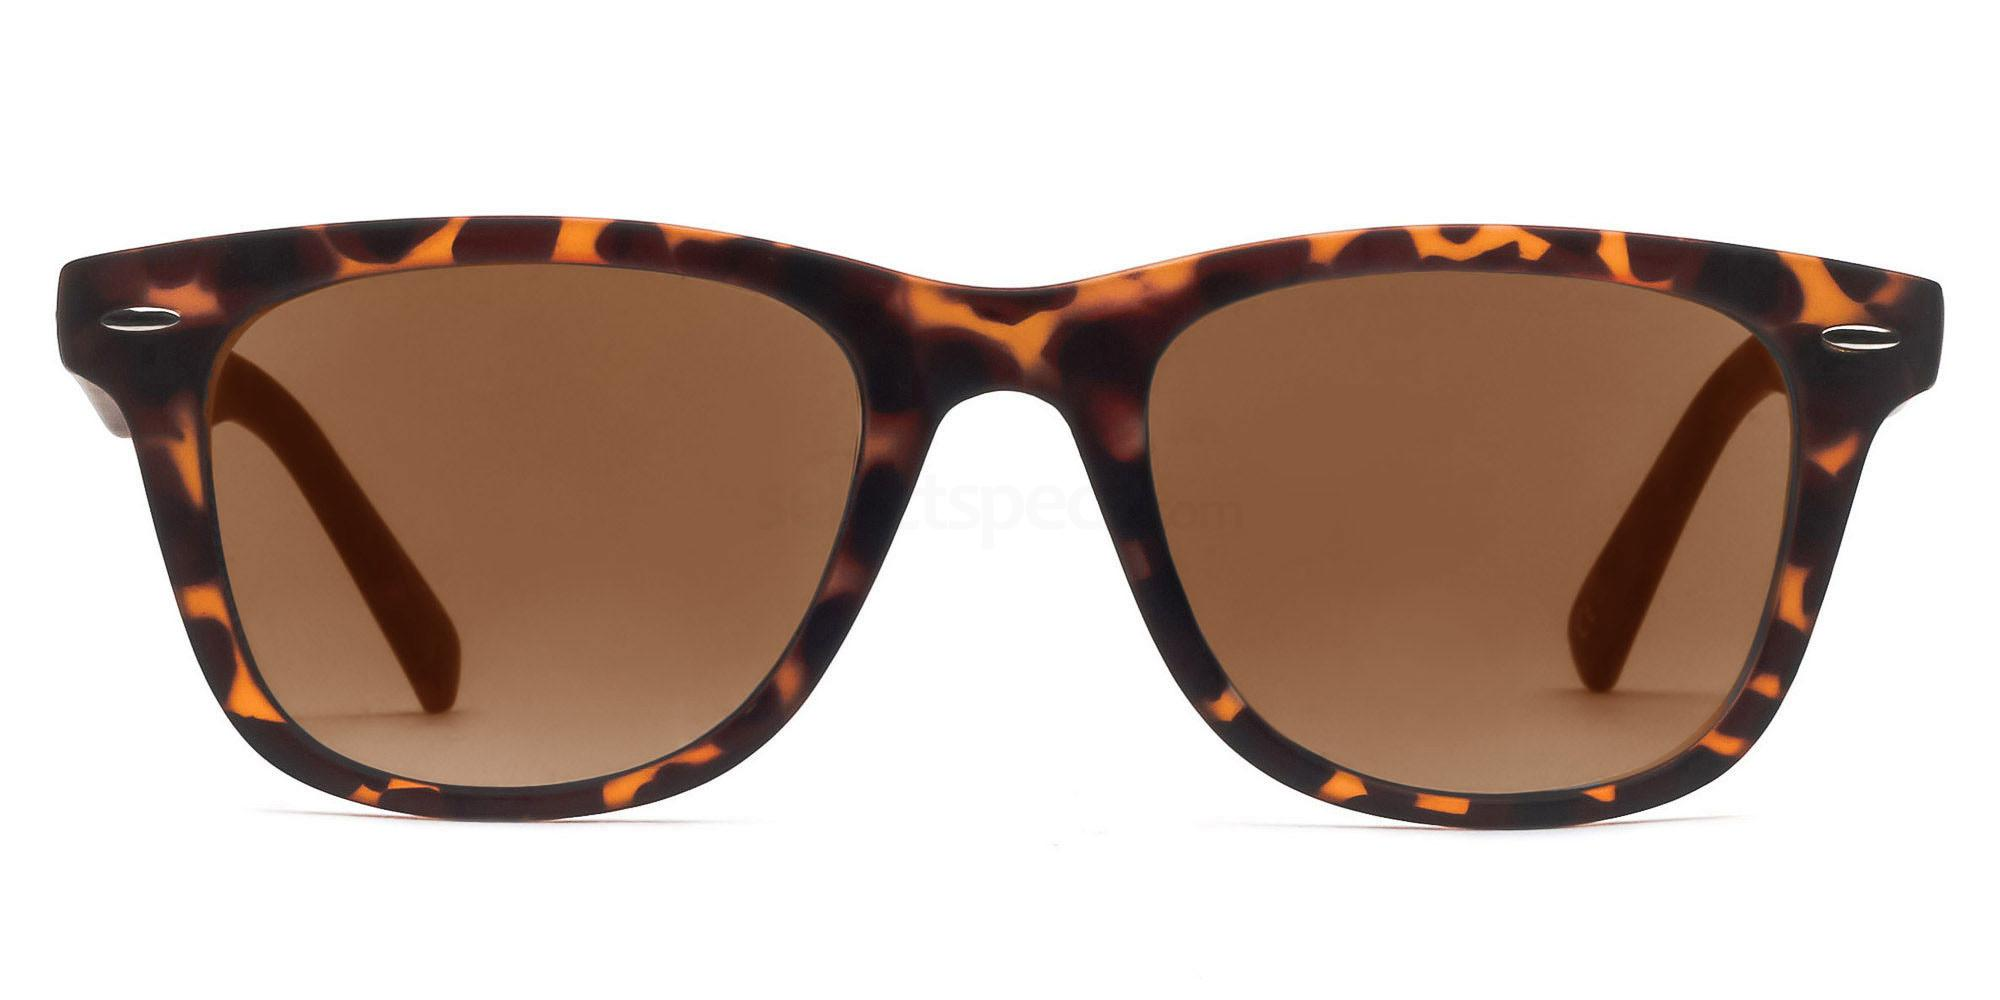 Savannah 8121 - Tortoise (Sunglasses)